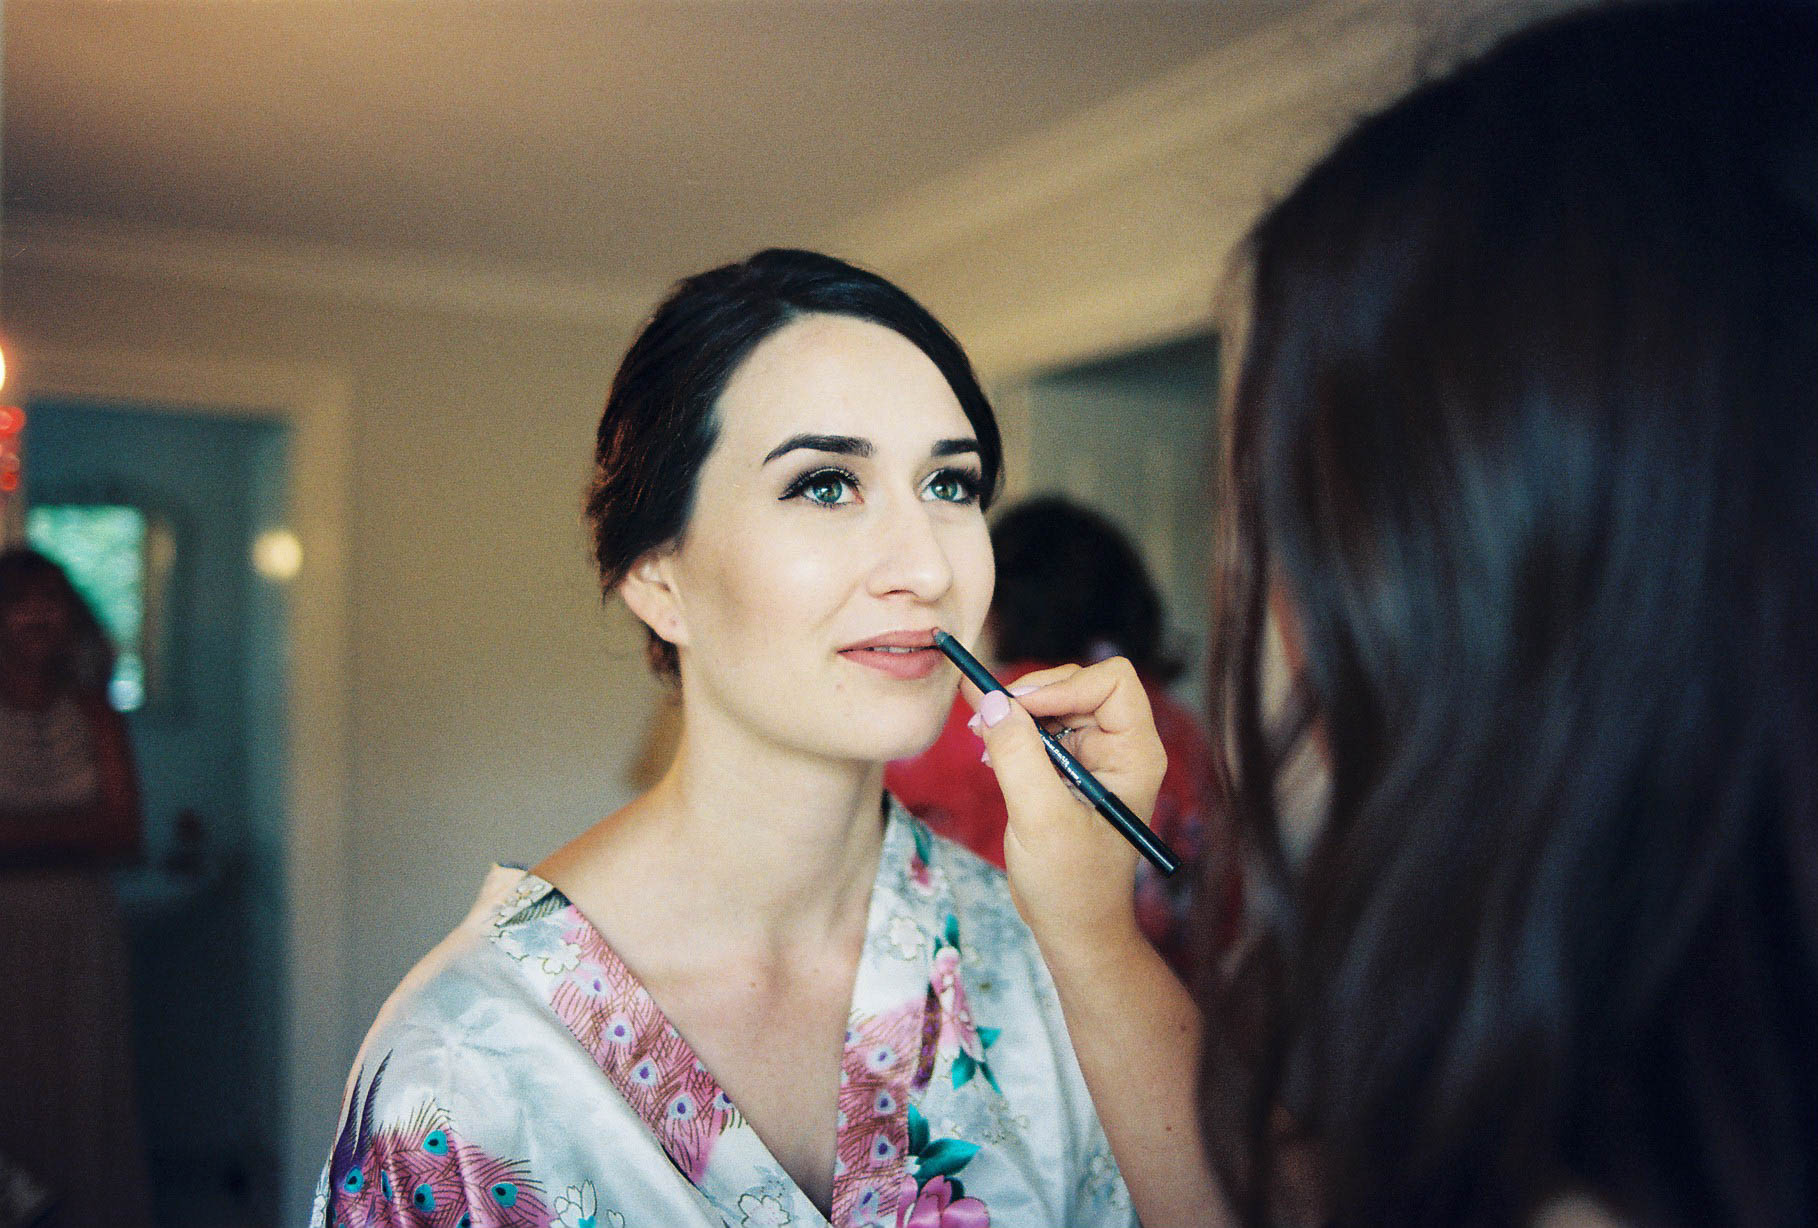 A photo of the bride having her lipstick applied before her wedding in Balingup, Western Australia